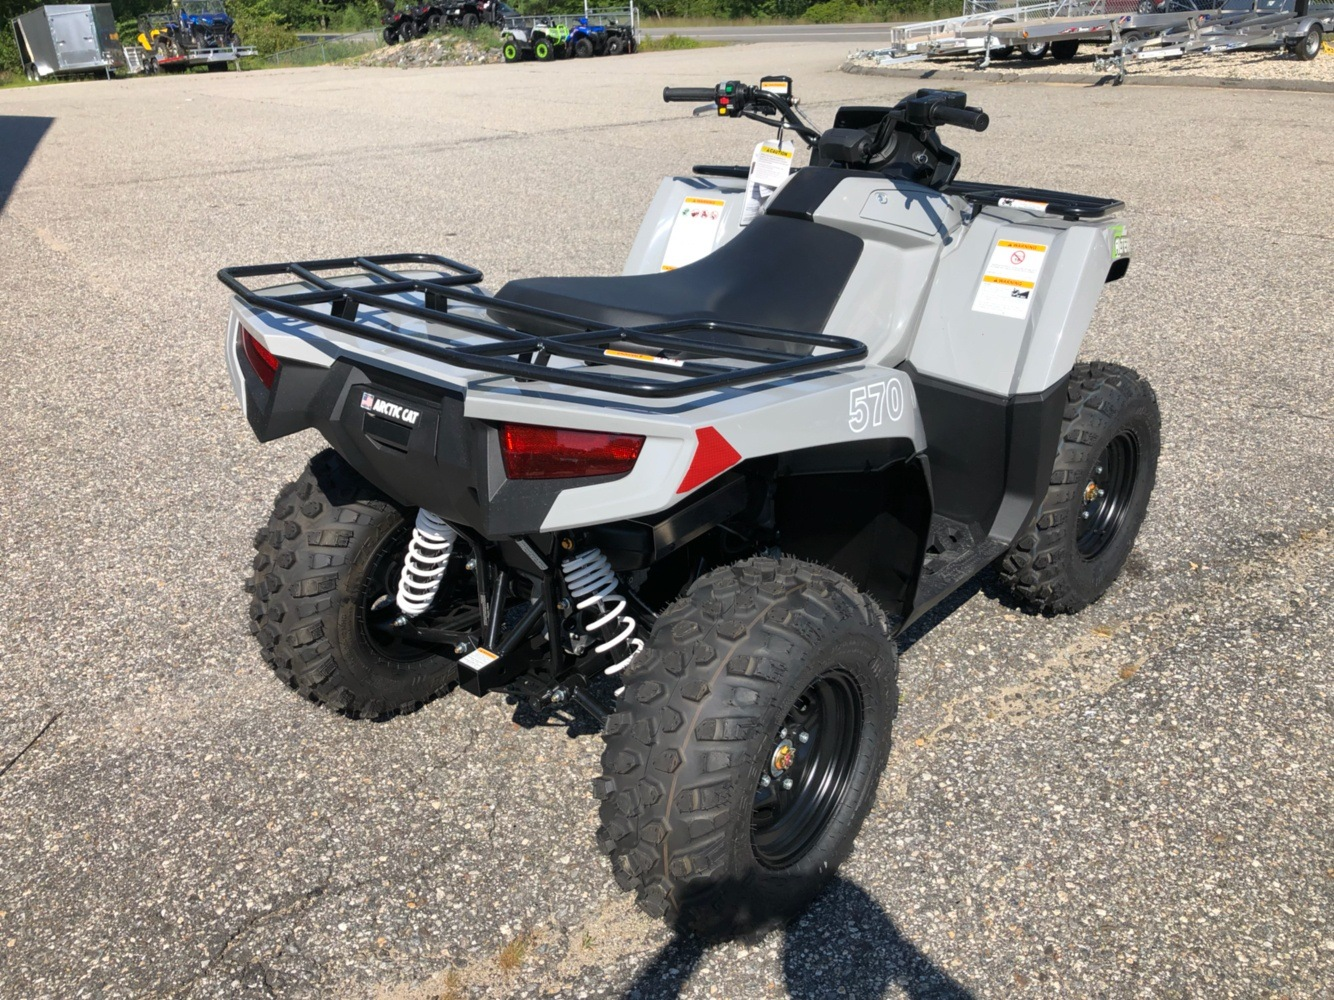 2020 Arctic Cat Alterra 570 in Lebanon, Maine - Photo 8